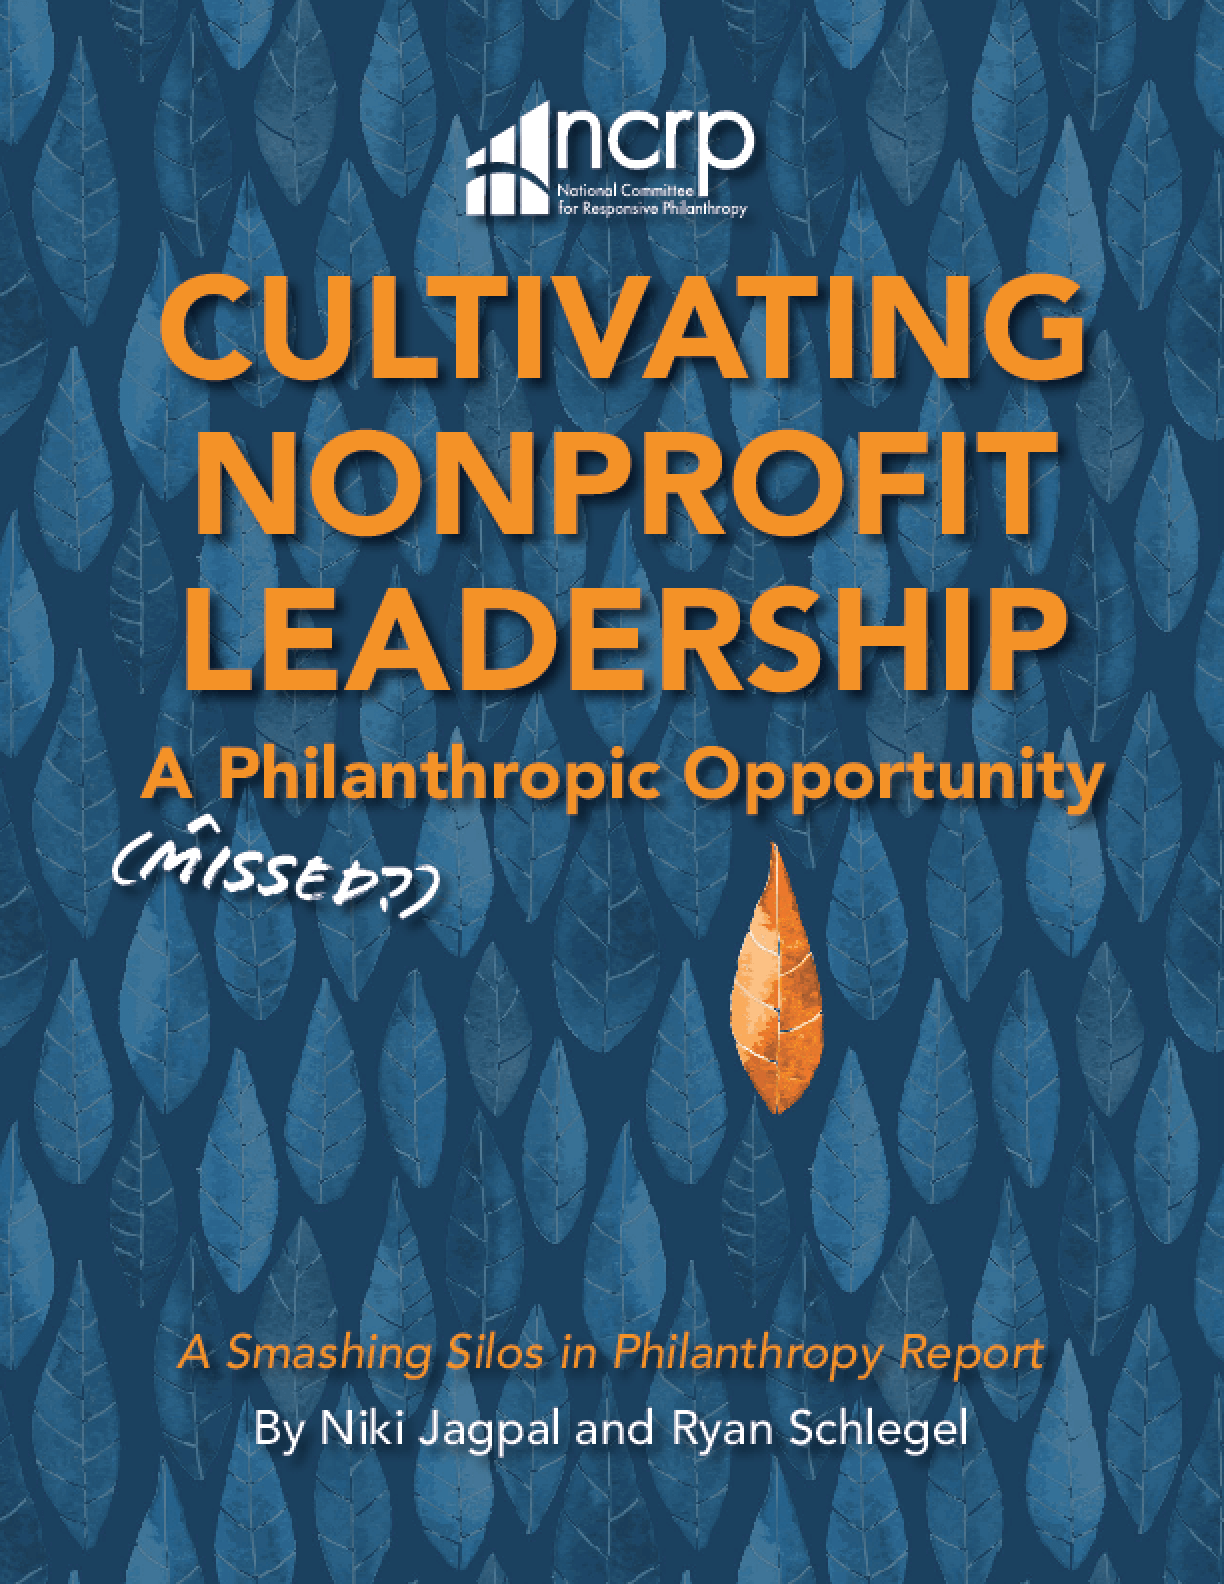 Cultivating Nonprofit Leadership: A (Missed?) Philanthropic Opportunity